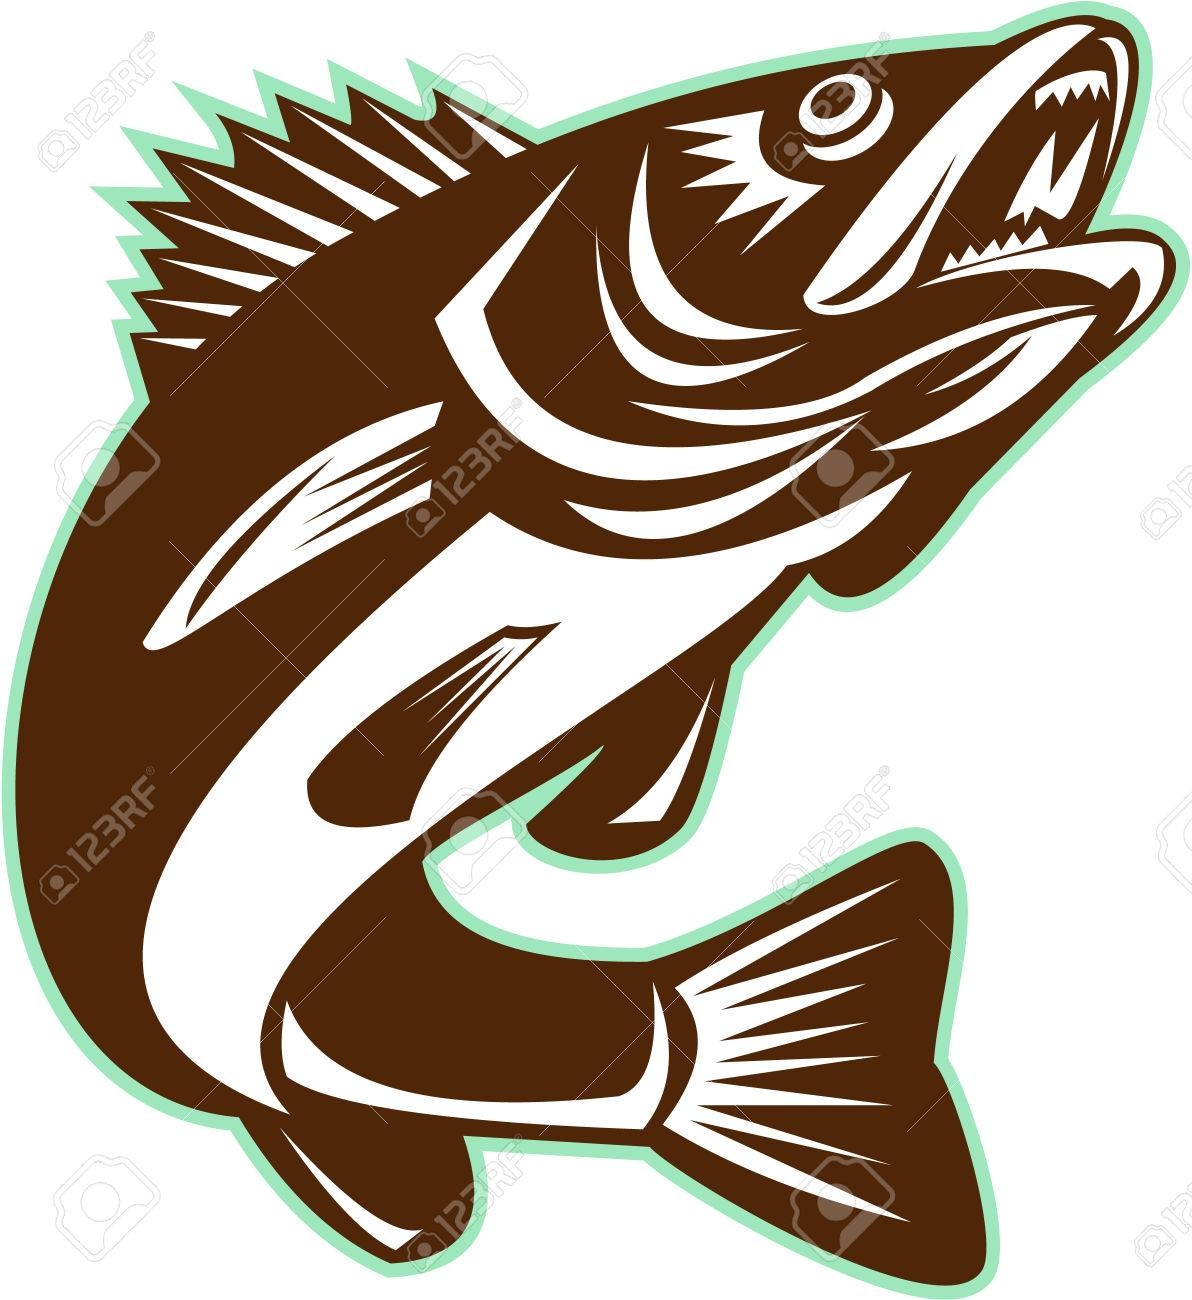 Illustration of a Walleye (Sander vitreus, formerly Stizostedion vitreum), a freshwater perciform fish jumping up on isolated background done in retro style. Stock Vector - 55296151